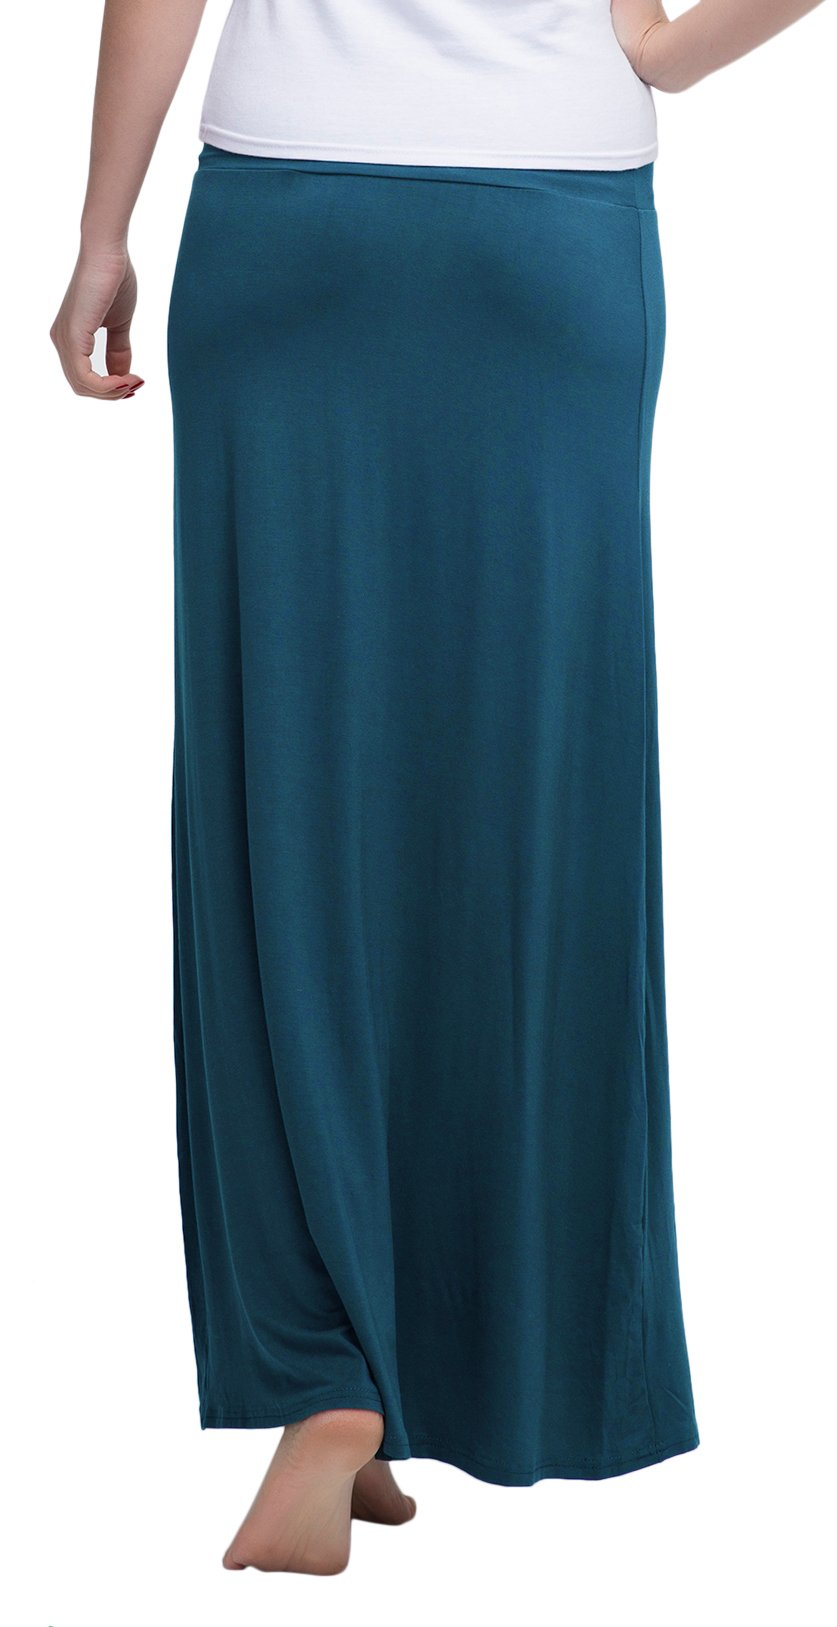 Urban CoCo Women's Stylish Spandex Comfy Fold-Over Flare Long Maxi Skirt (M, Steel Blue)